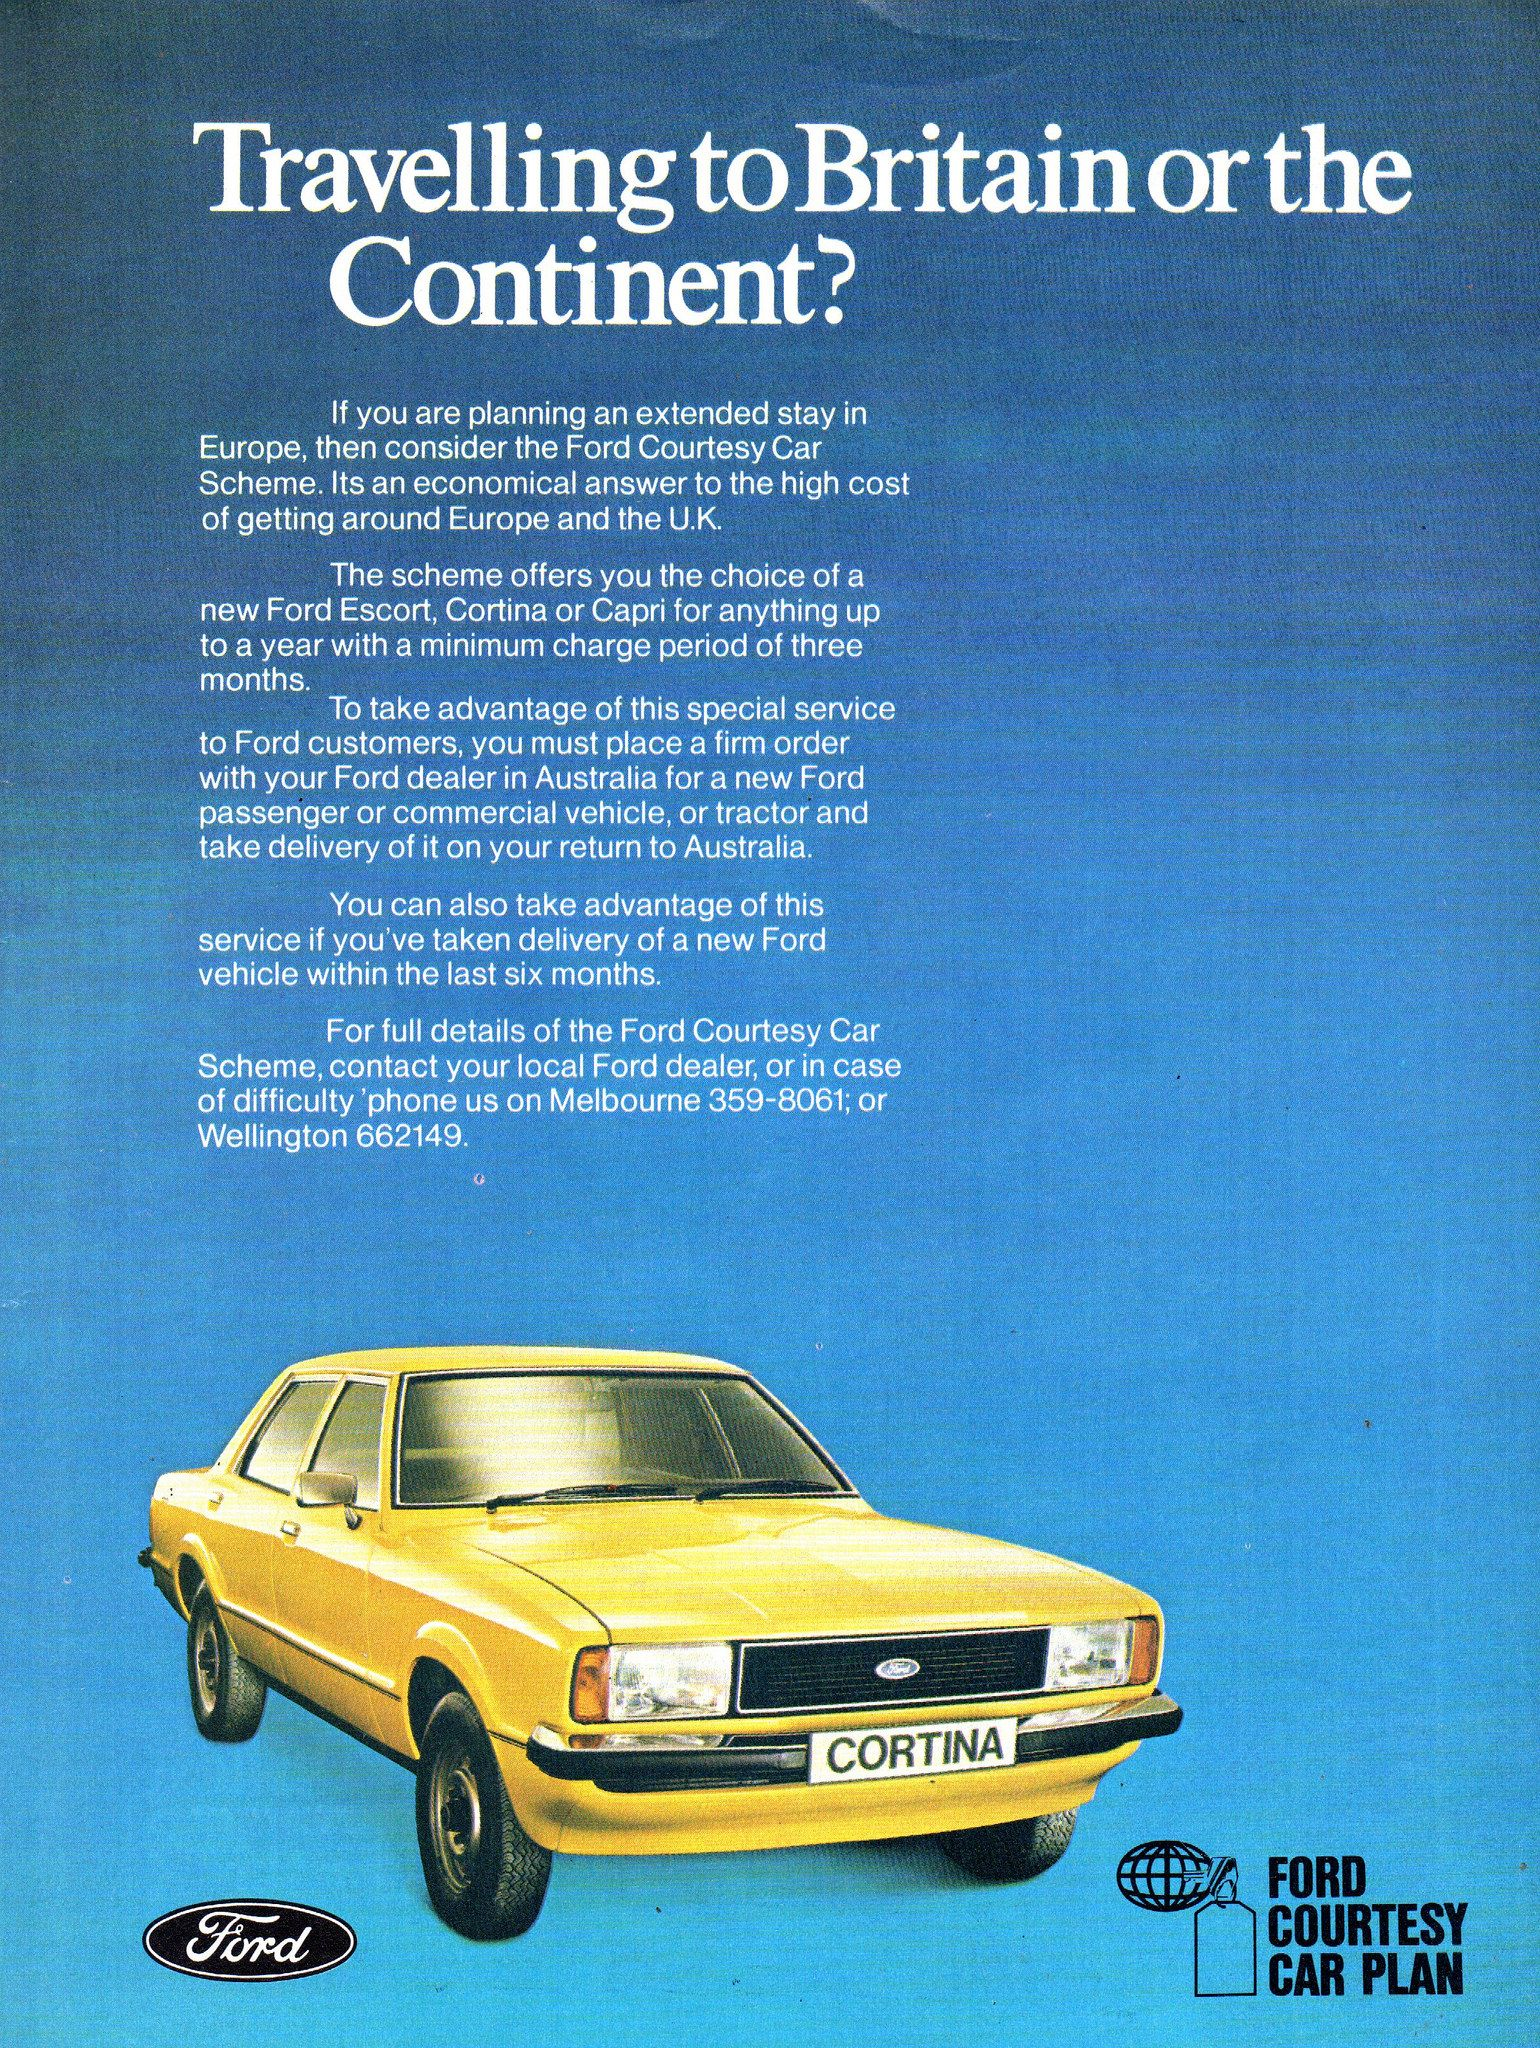 1978 Te Ford Cortina Travelling To Britain Or The Continent Courtesy Car Plan Aussie Original Magazine Advertisement Car Ford Ford Classic Cars